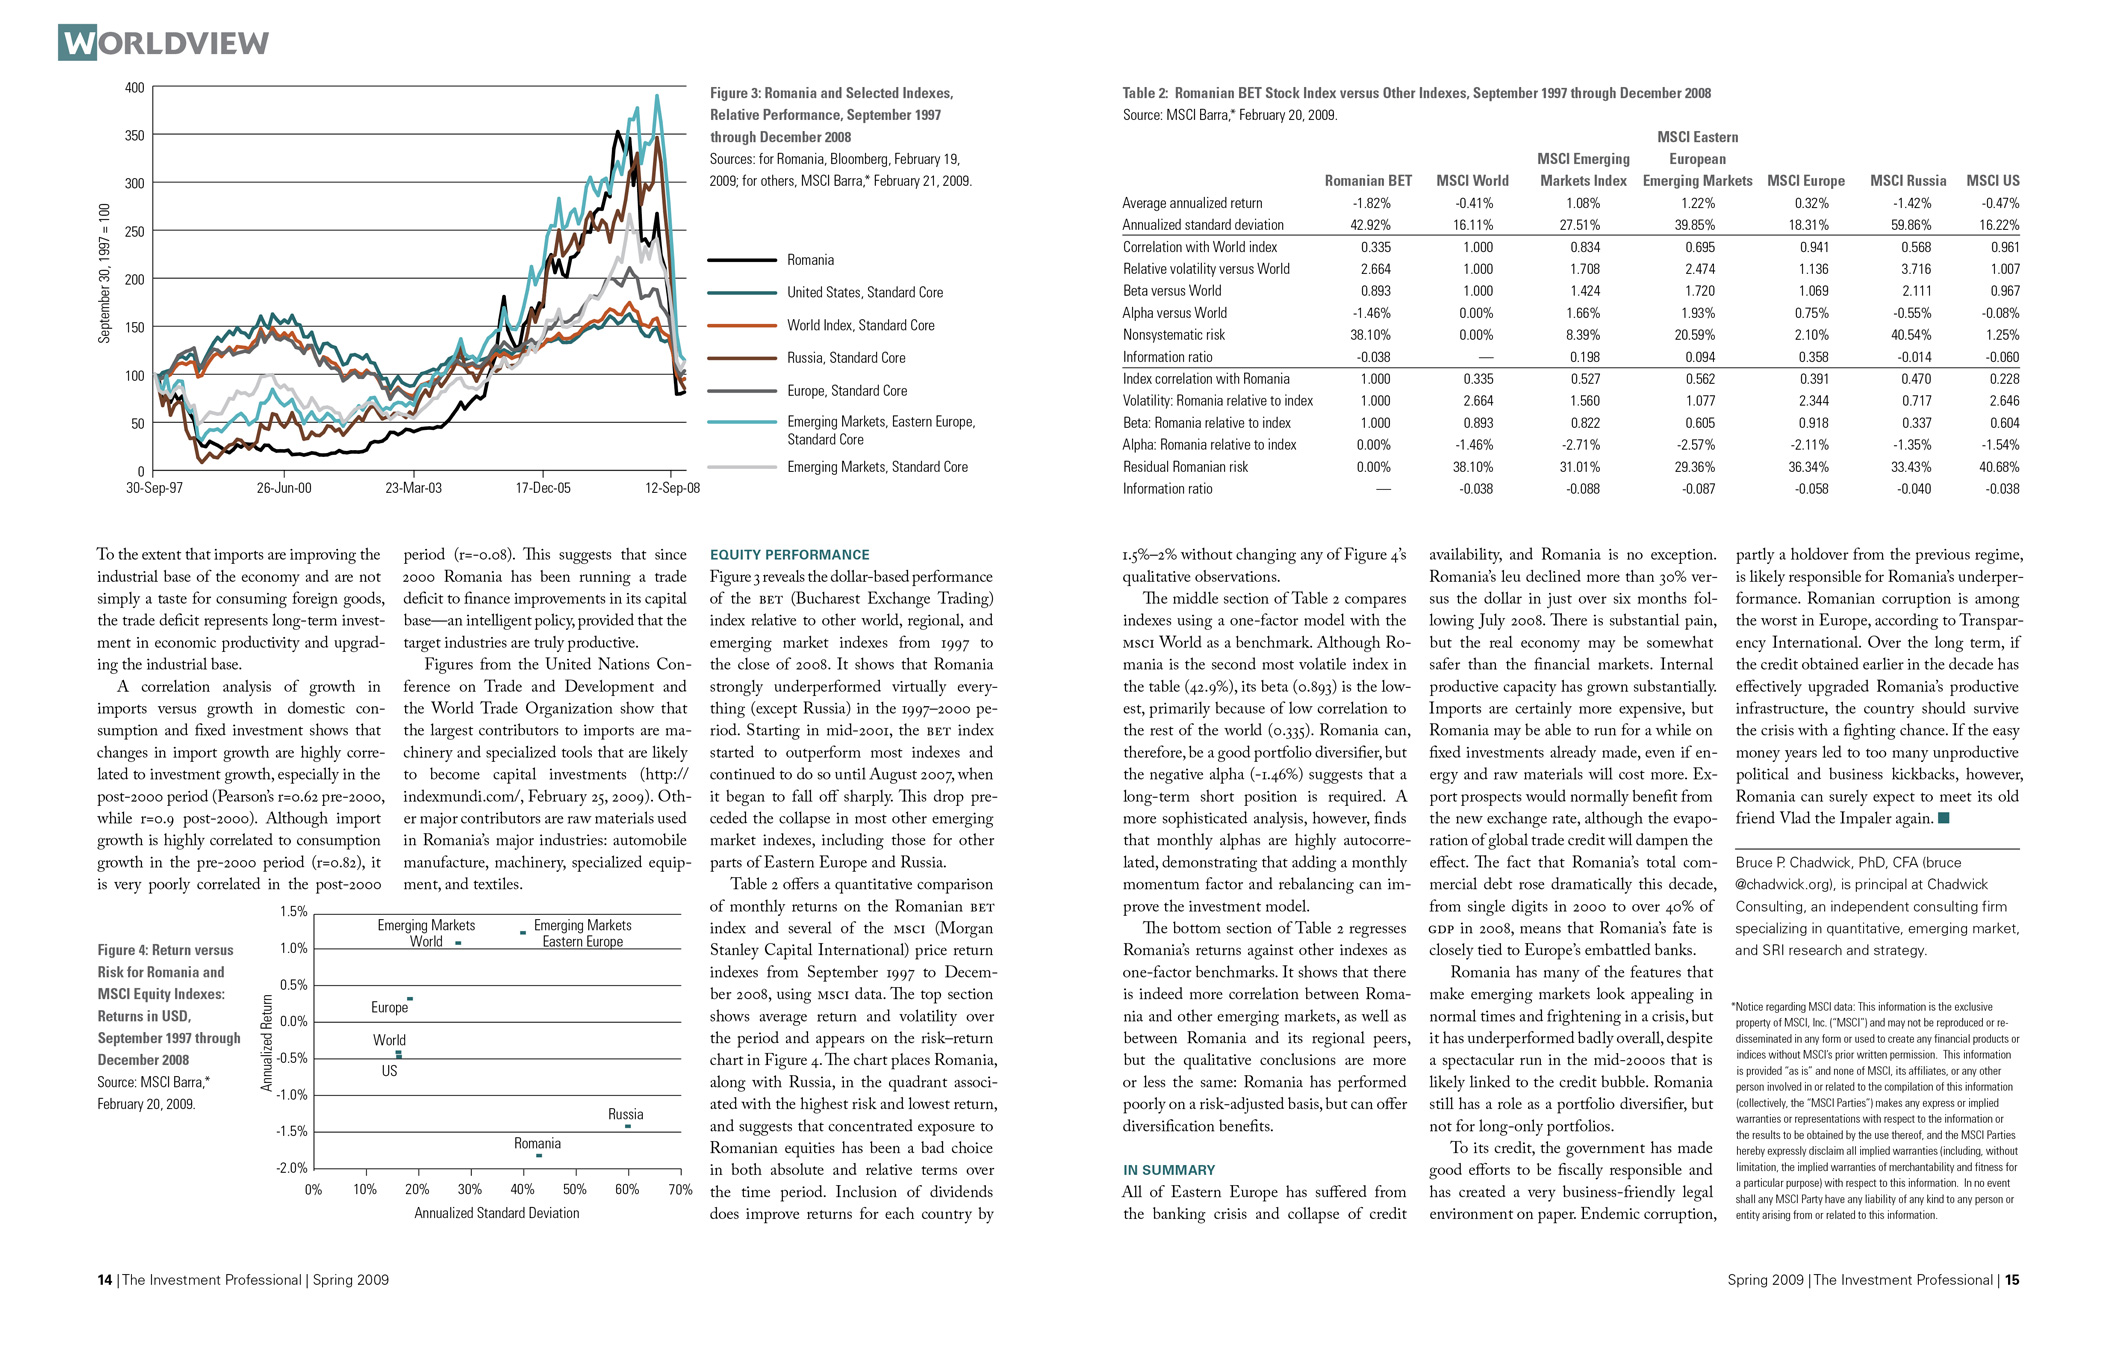 Article in The Investment Professional about Romania's economy during the financial crisis.